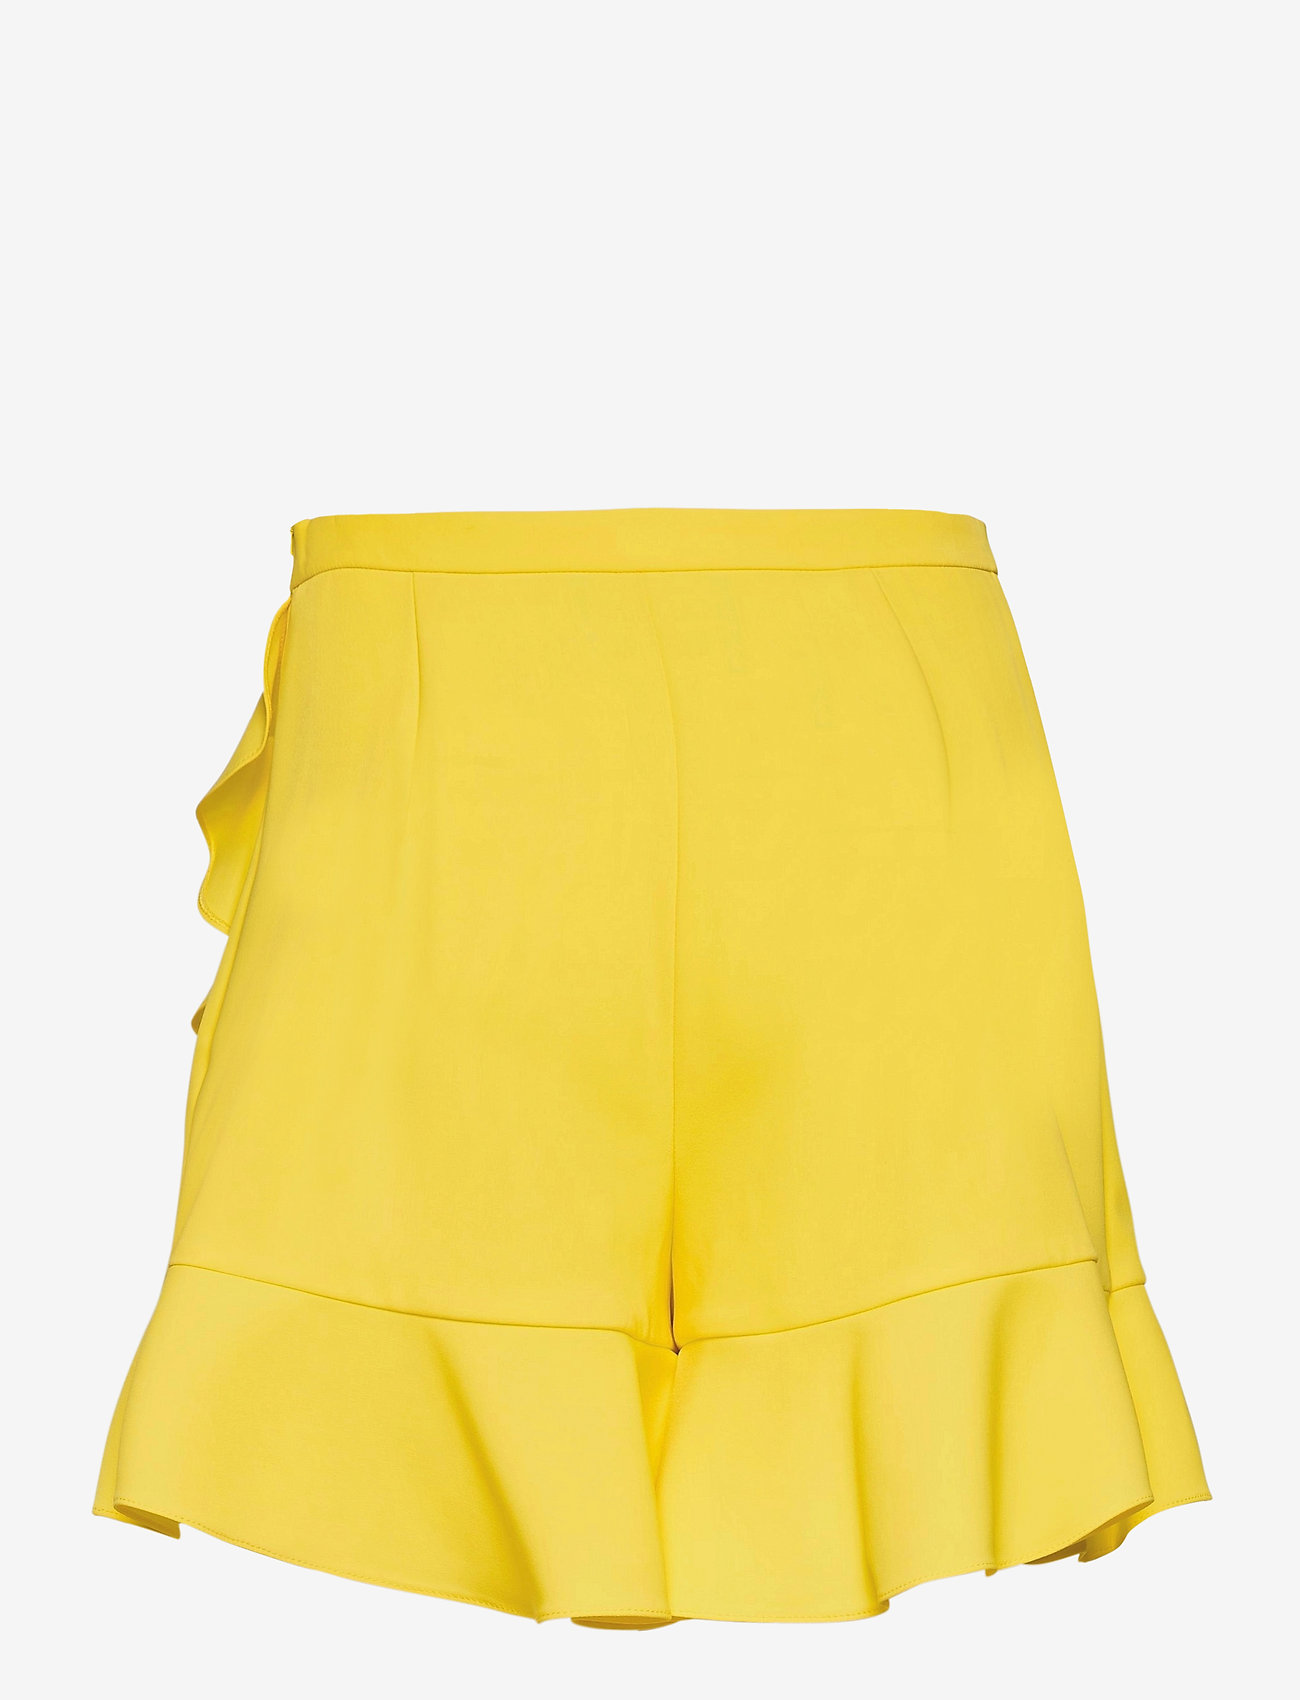 Boutique Moschino - Boutique Moschino TROUSERS - casual shorts - yellow - 1